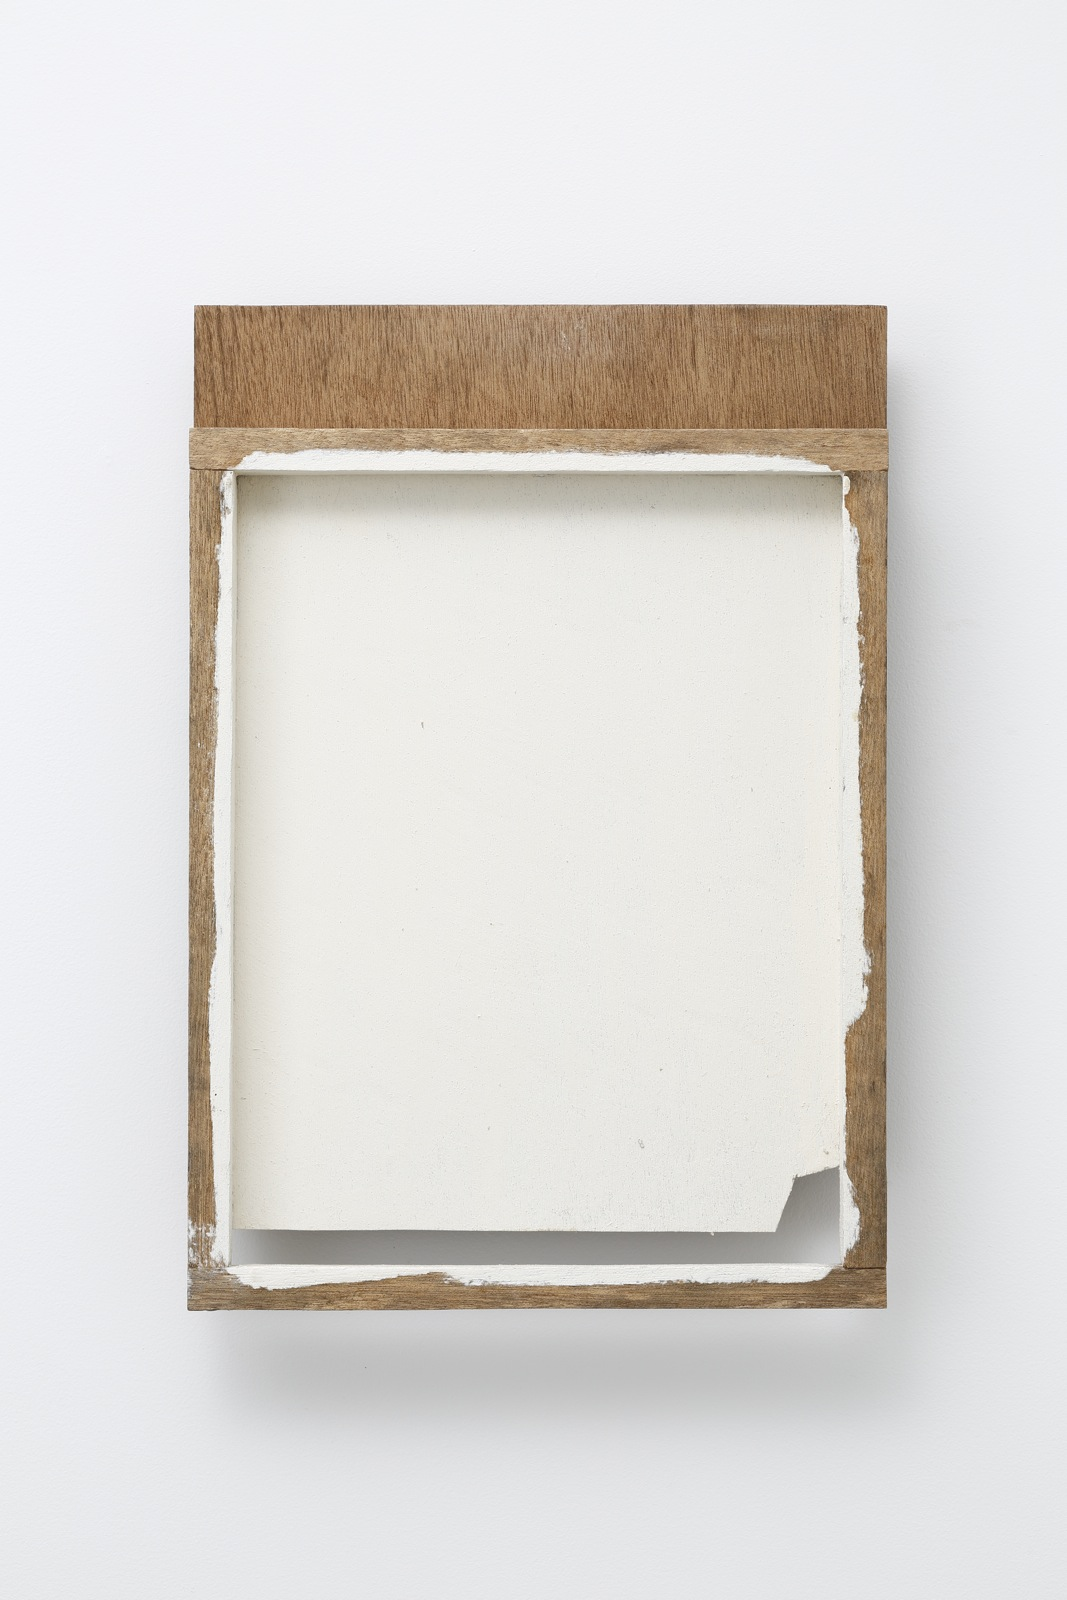 Spatial Component—3 , 1989 間素体—3 ( Kansotai—3 ) Wood, white paint 20 x 13 3/4 x 2 3/4 inches 51 x 35 x 7.2 centimeters